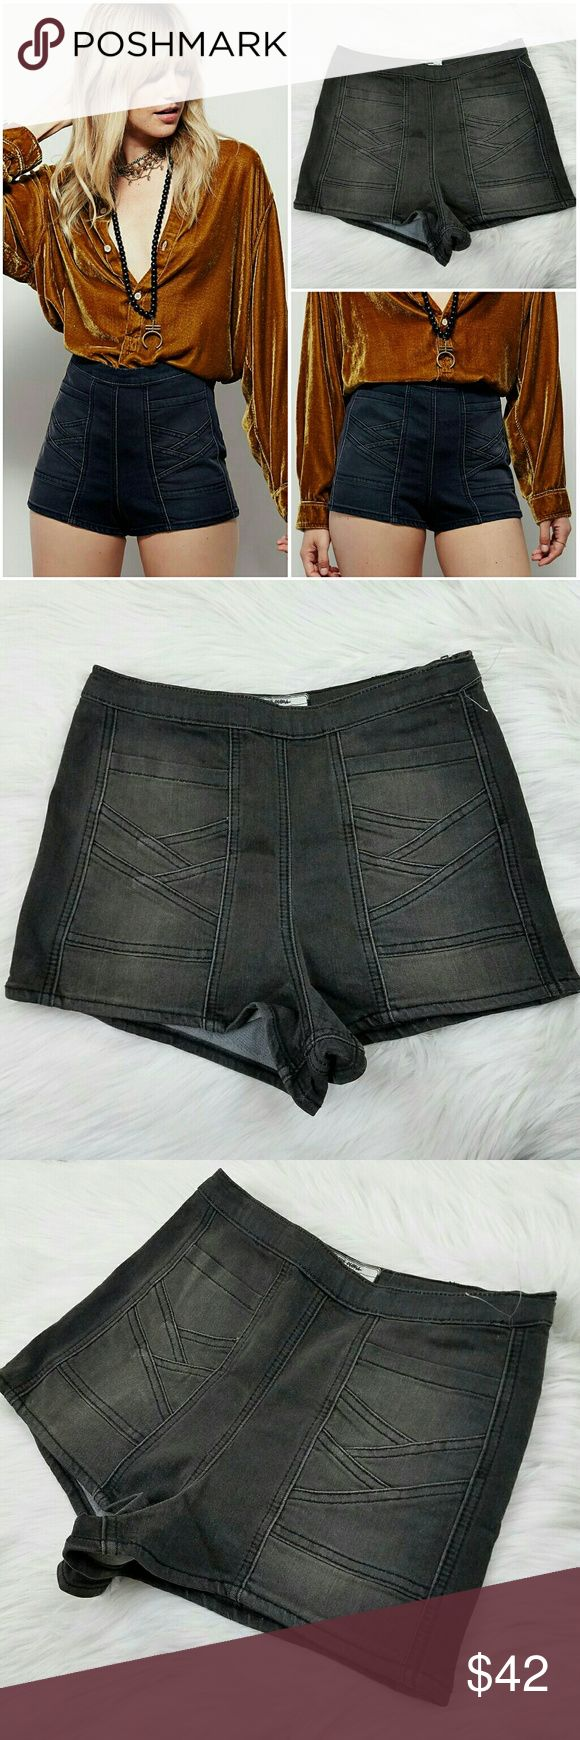 """Free People Radar Love High Rise Shorts NWOT Free People """"Radar Love"""" high waisted shorts.  Faded black / charcoal color.  Detailed front pockets for an elevated look.  Zips up on side.  Very stretchy!  Brand new without tags, plastic tag thing still attached.  Never worn.  Size 26 Free People Shorts"""